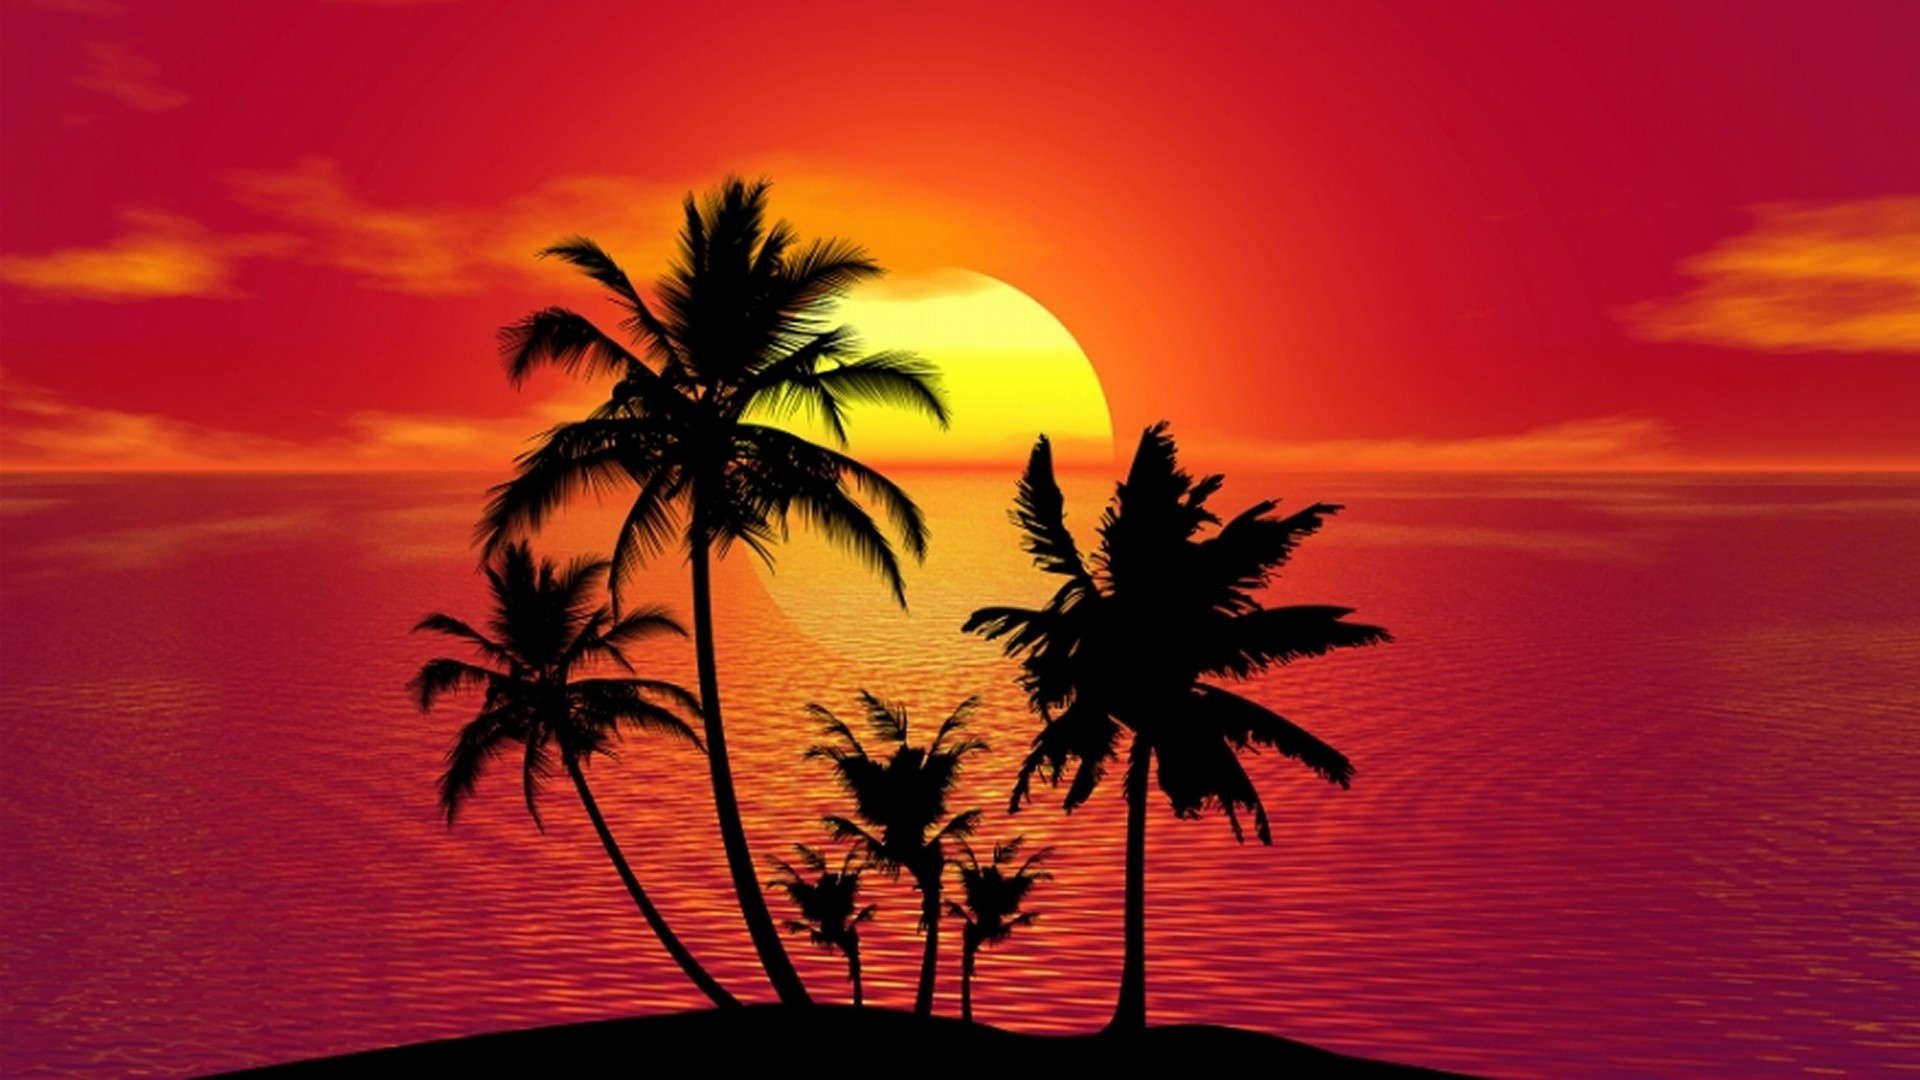 Tropical island silhouette in the sunset wallpaper